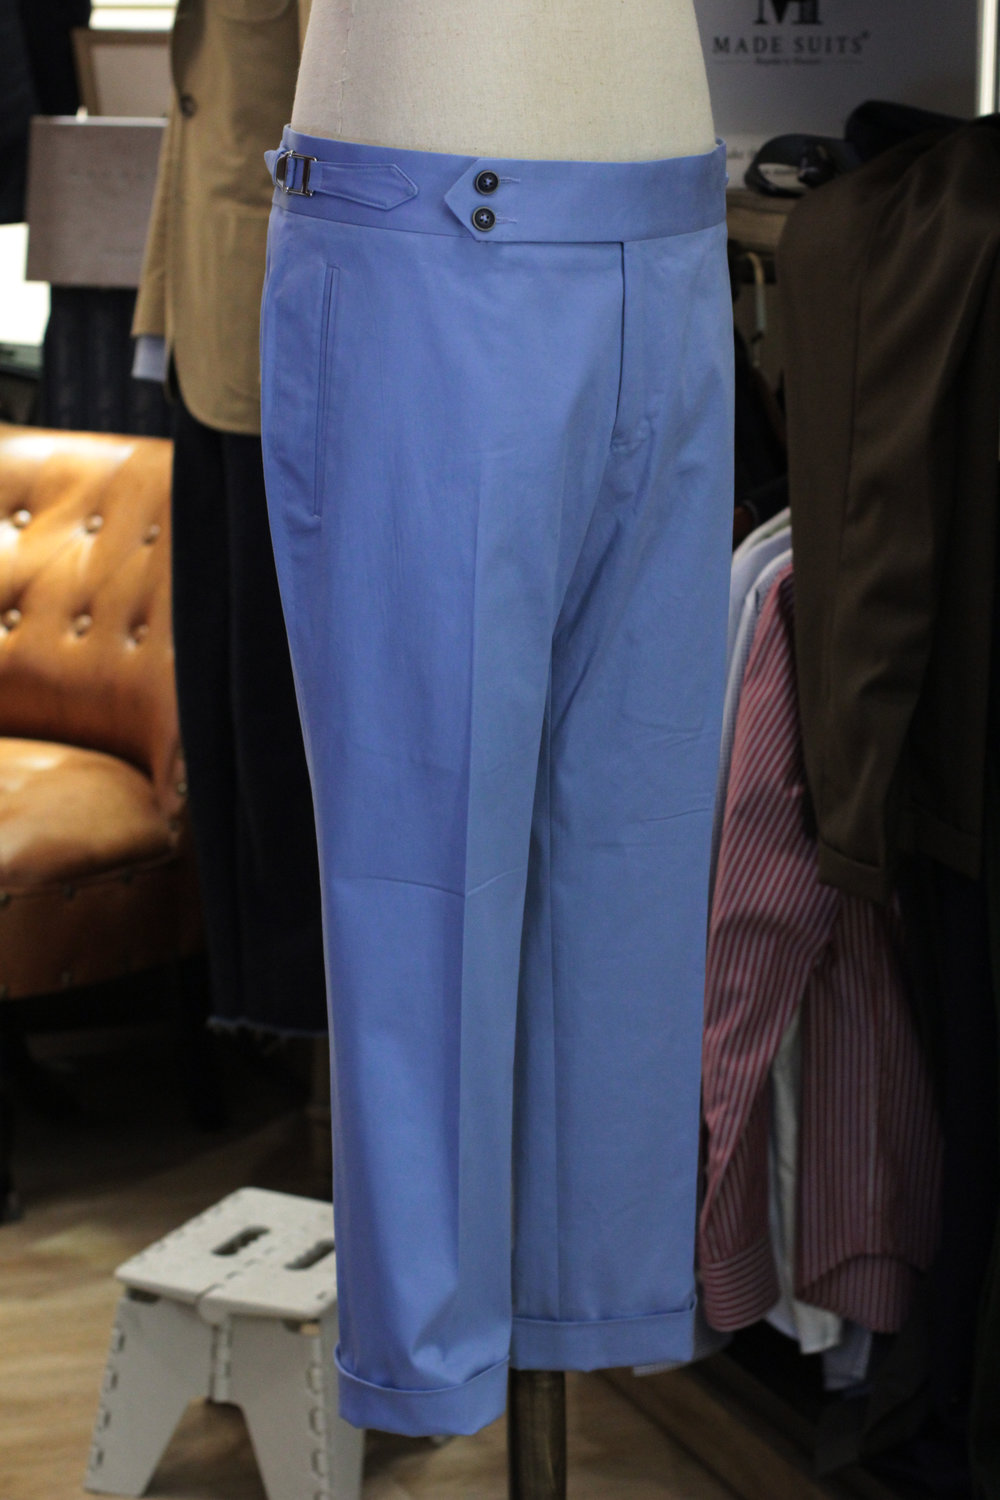 Light Blue Chino Cotton Made Suits Made to measure chinos trousers casual pants with cuff.JPG